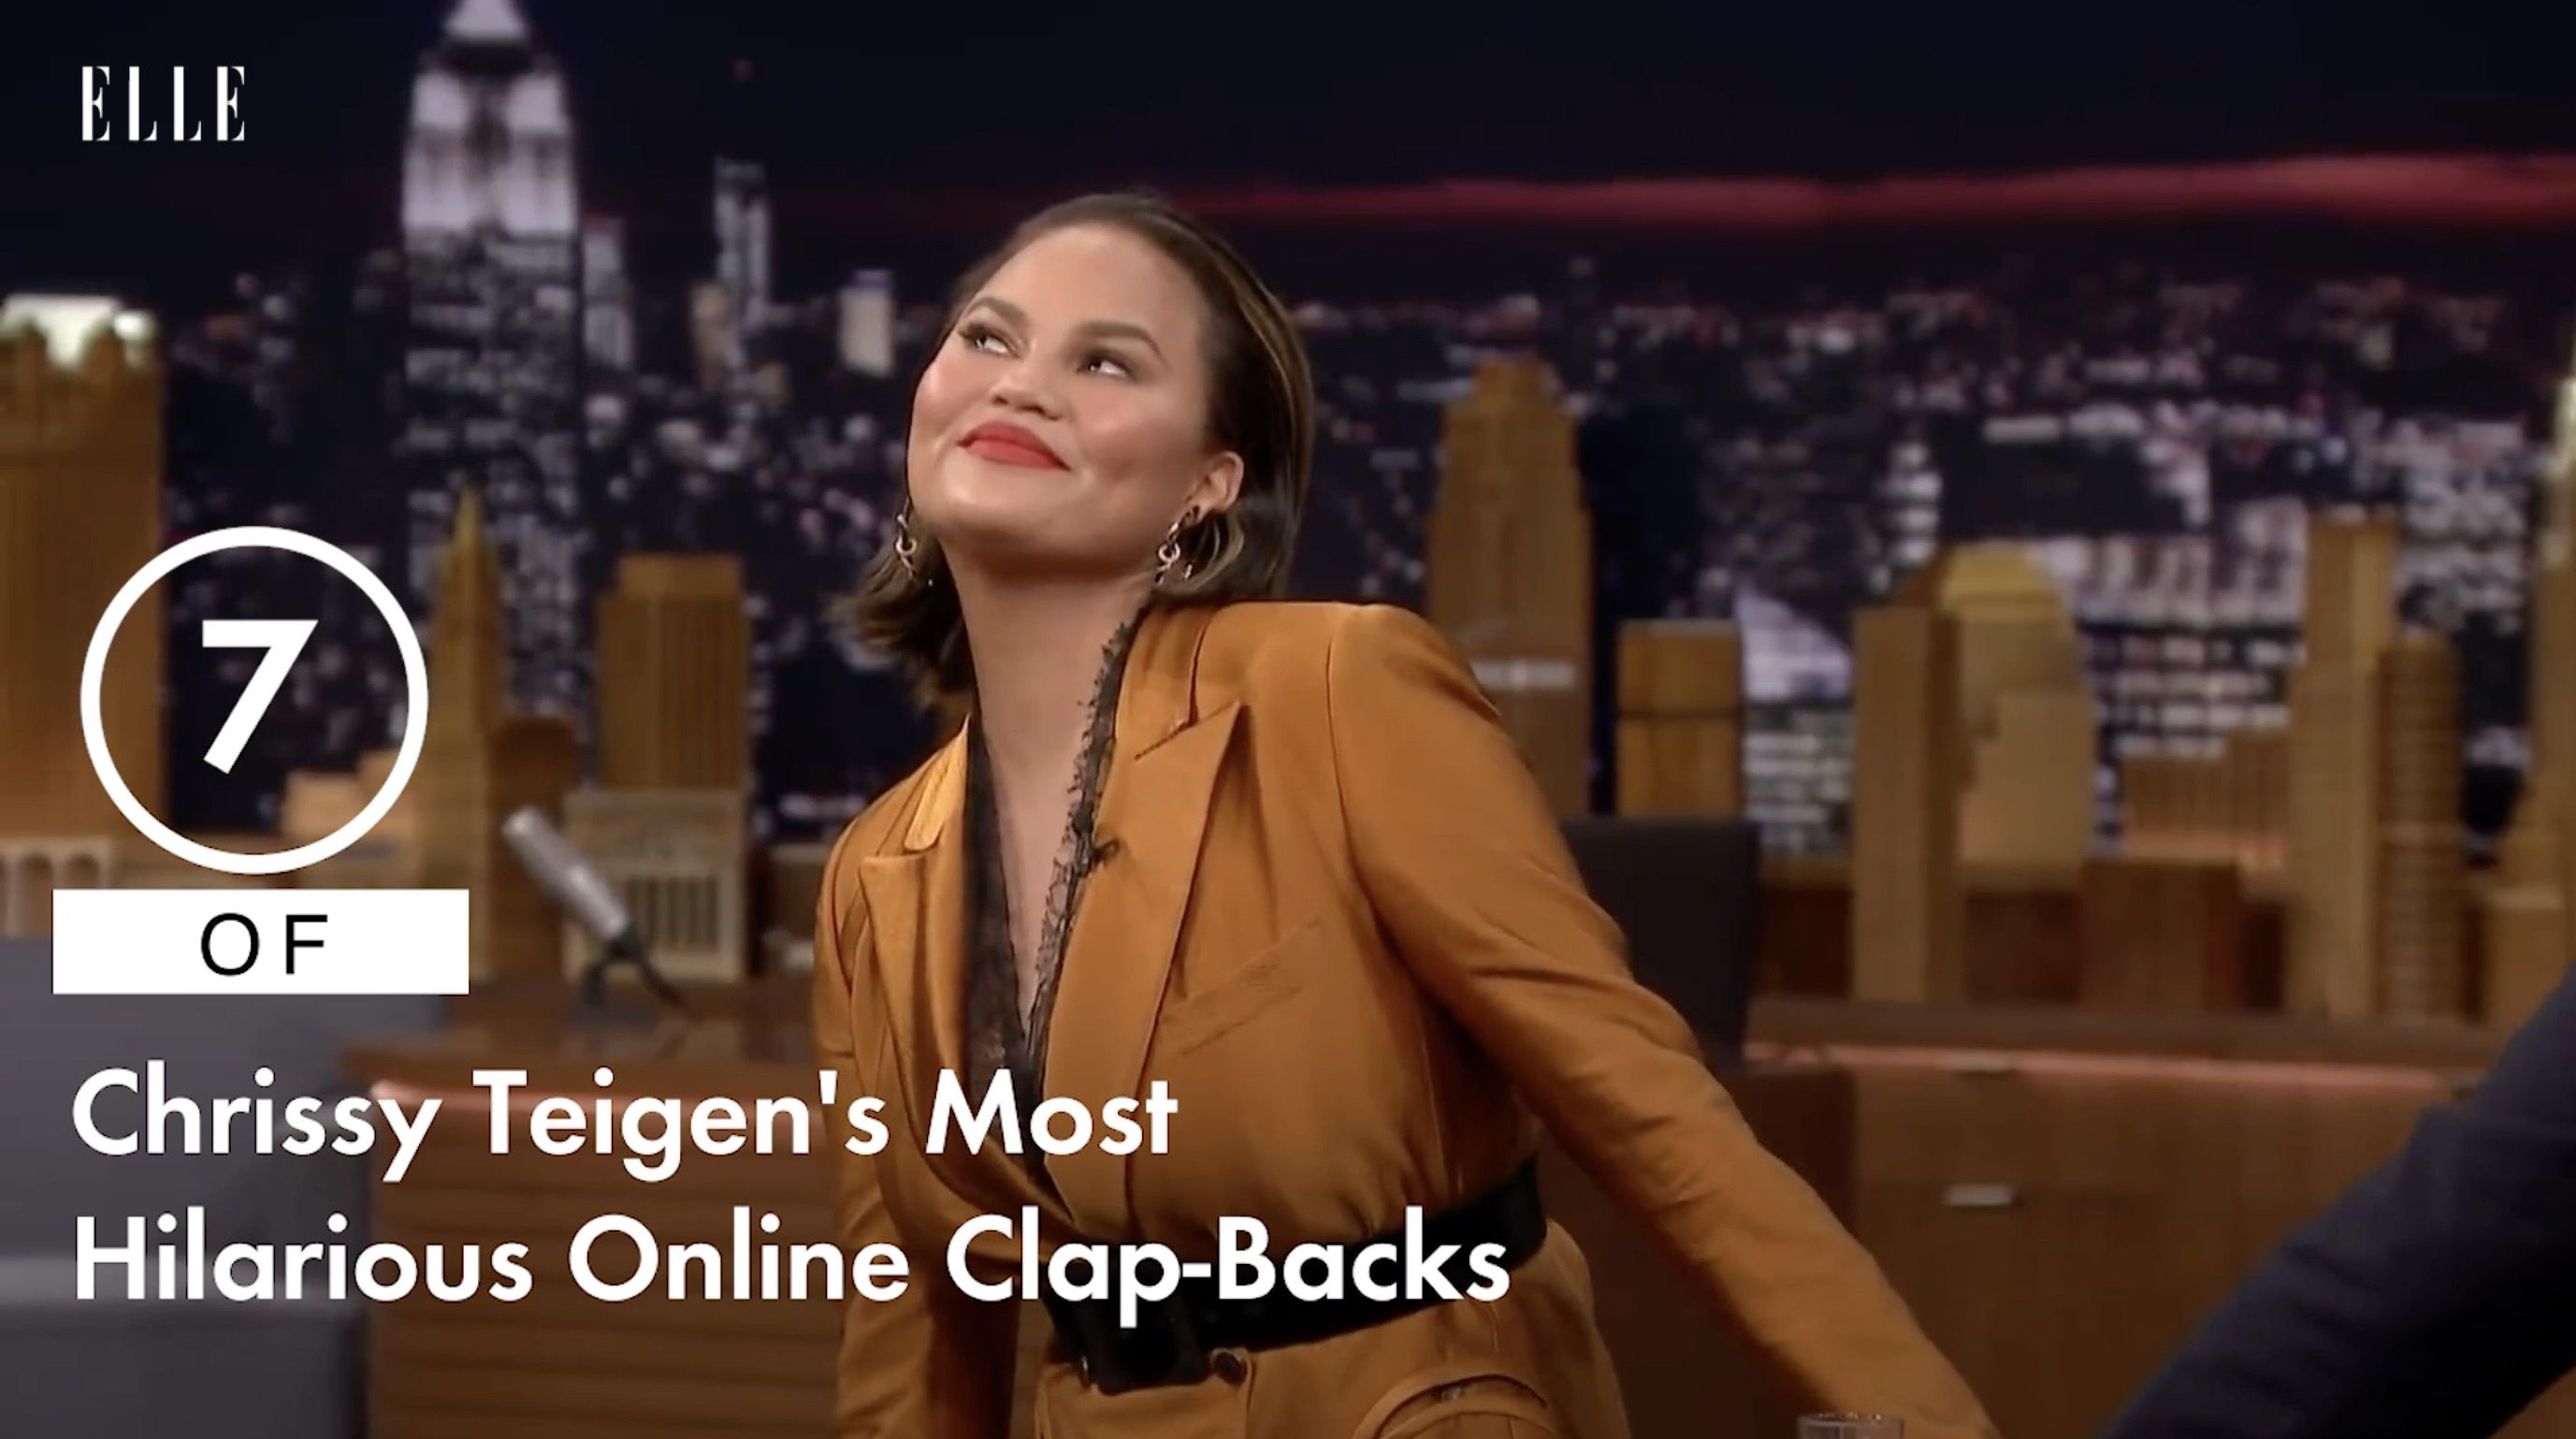 A Braless Chrissy Teigen Just Clapped Back At Instagram Trolls Telling Her She Needs One